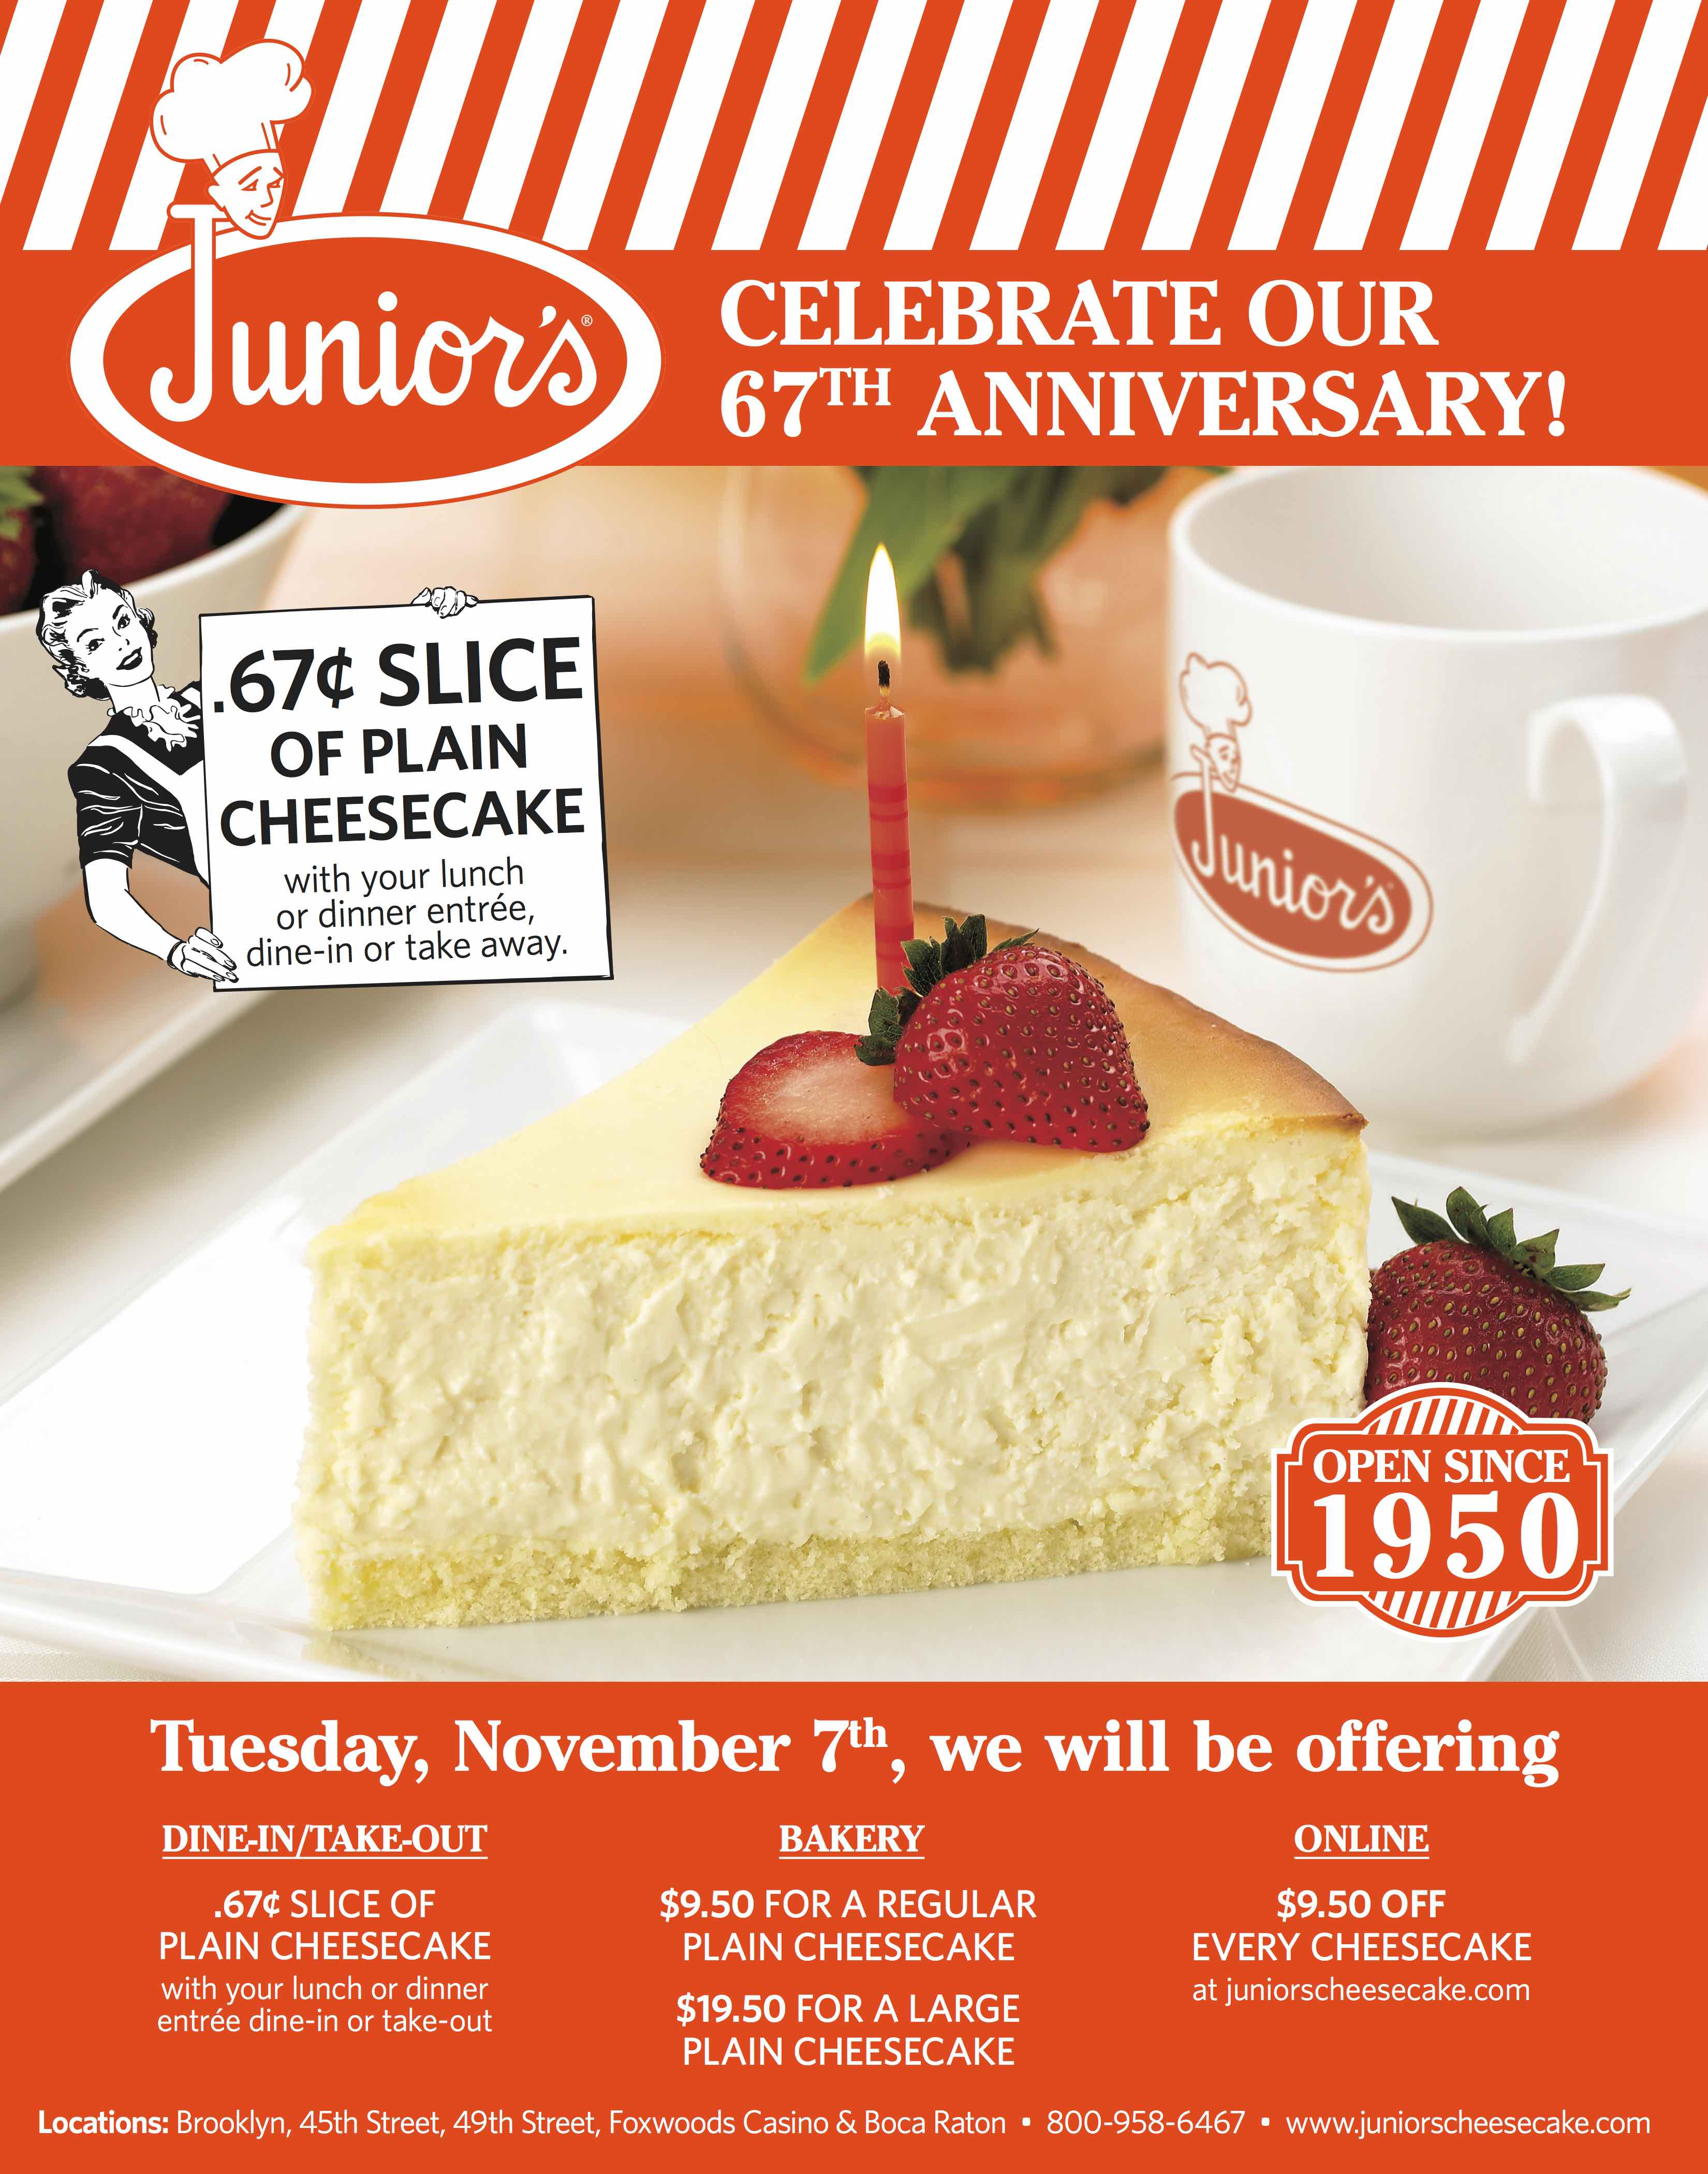 Get Ready to Celebrate our Anniversary! Tuesday November 7th!